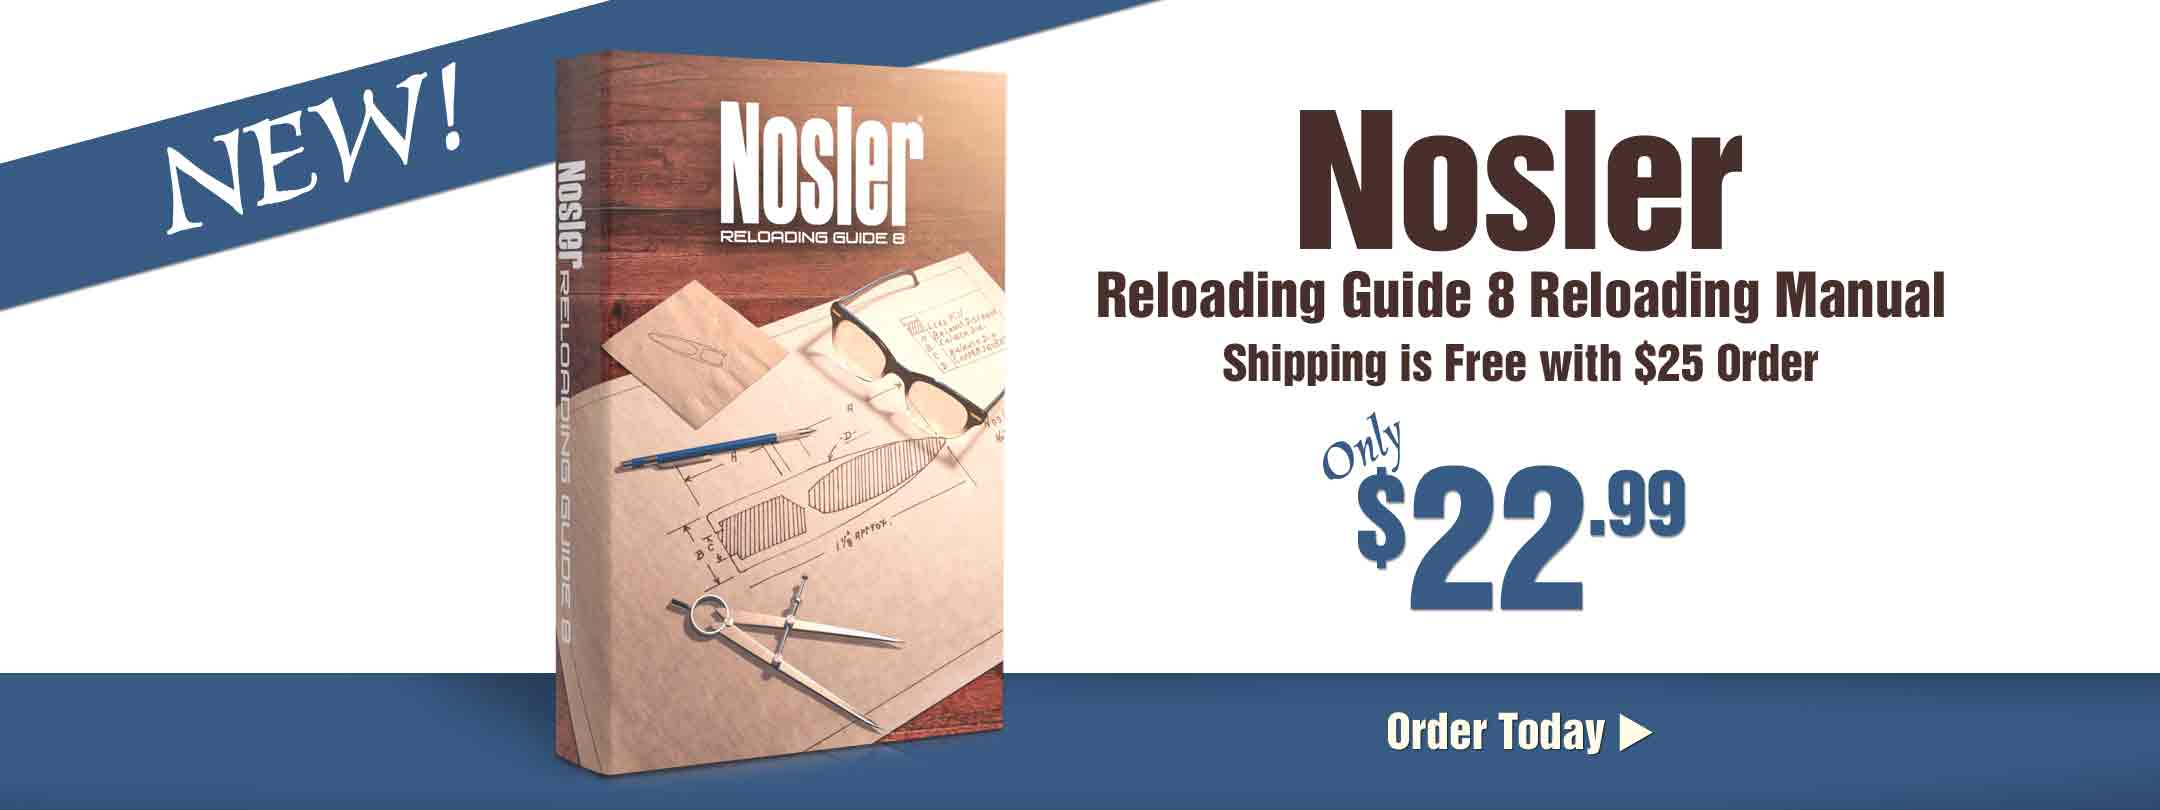 New Nosler Reloading Guide is Here